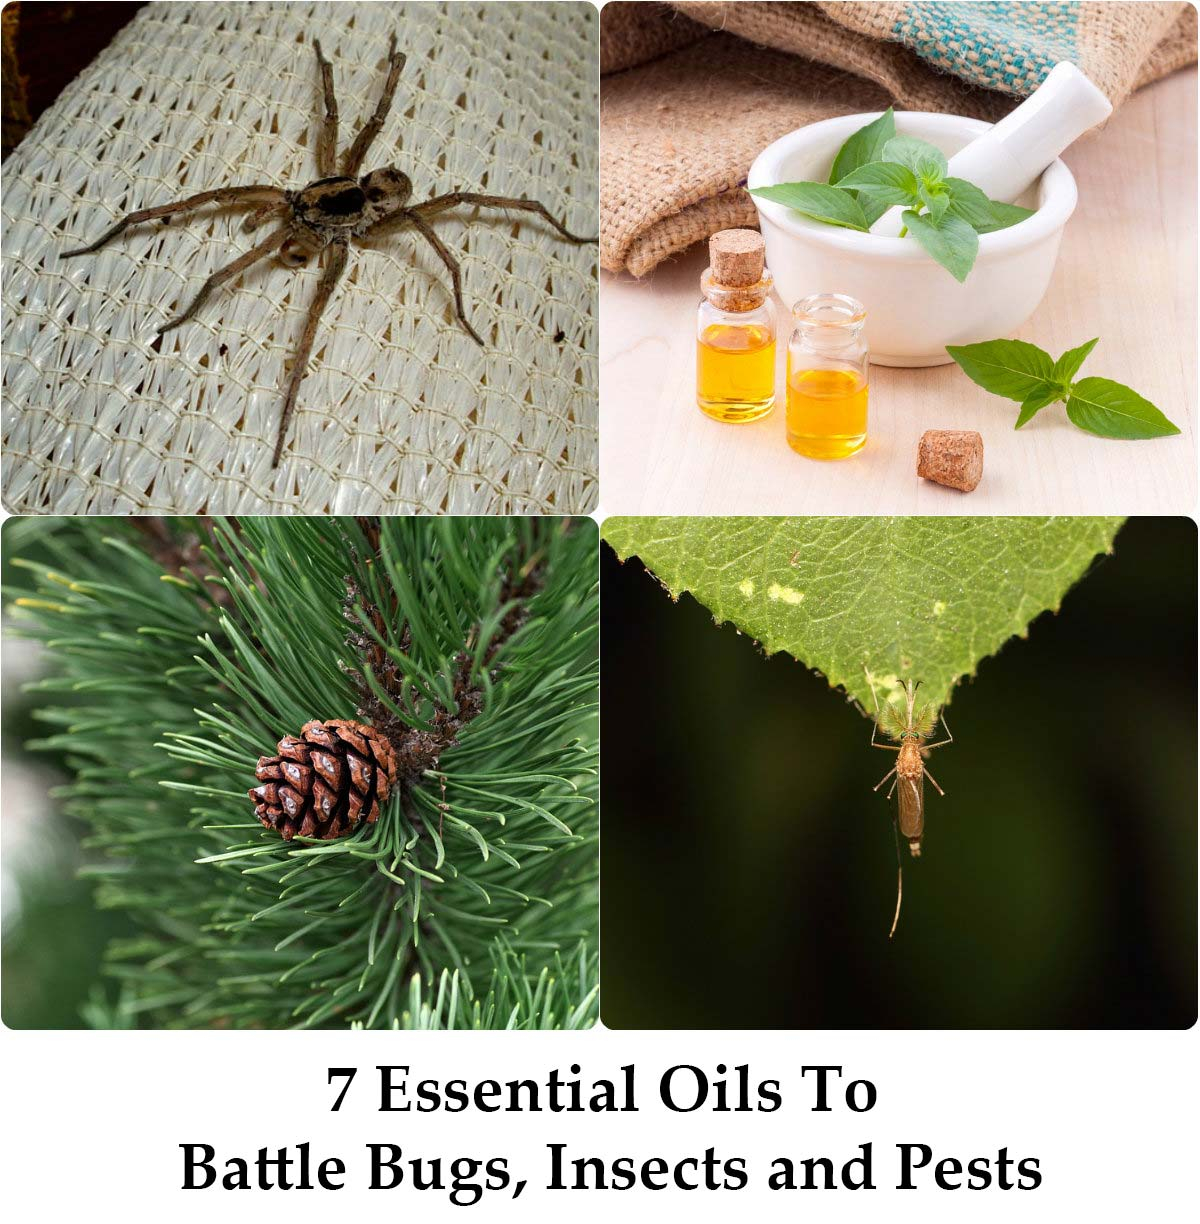 Modern 7 Essential Oils To Battle Bugs, Insects And Pests - Home And with regard to Luxury Essential Oils For Garden Pests